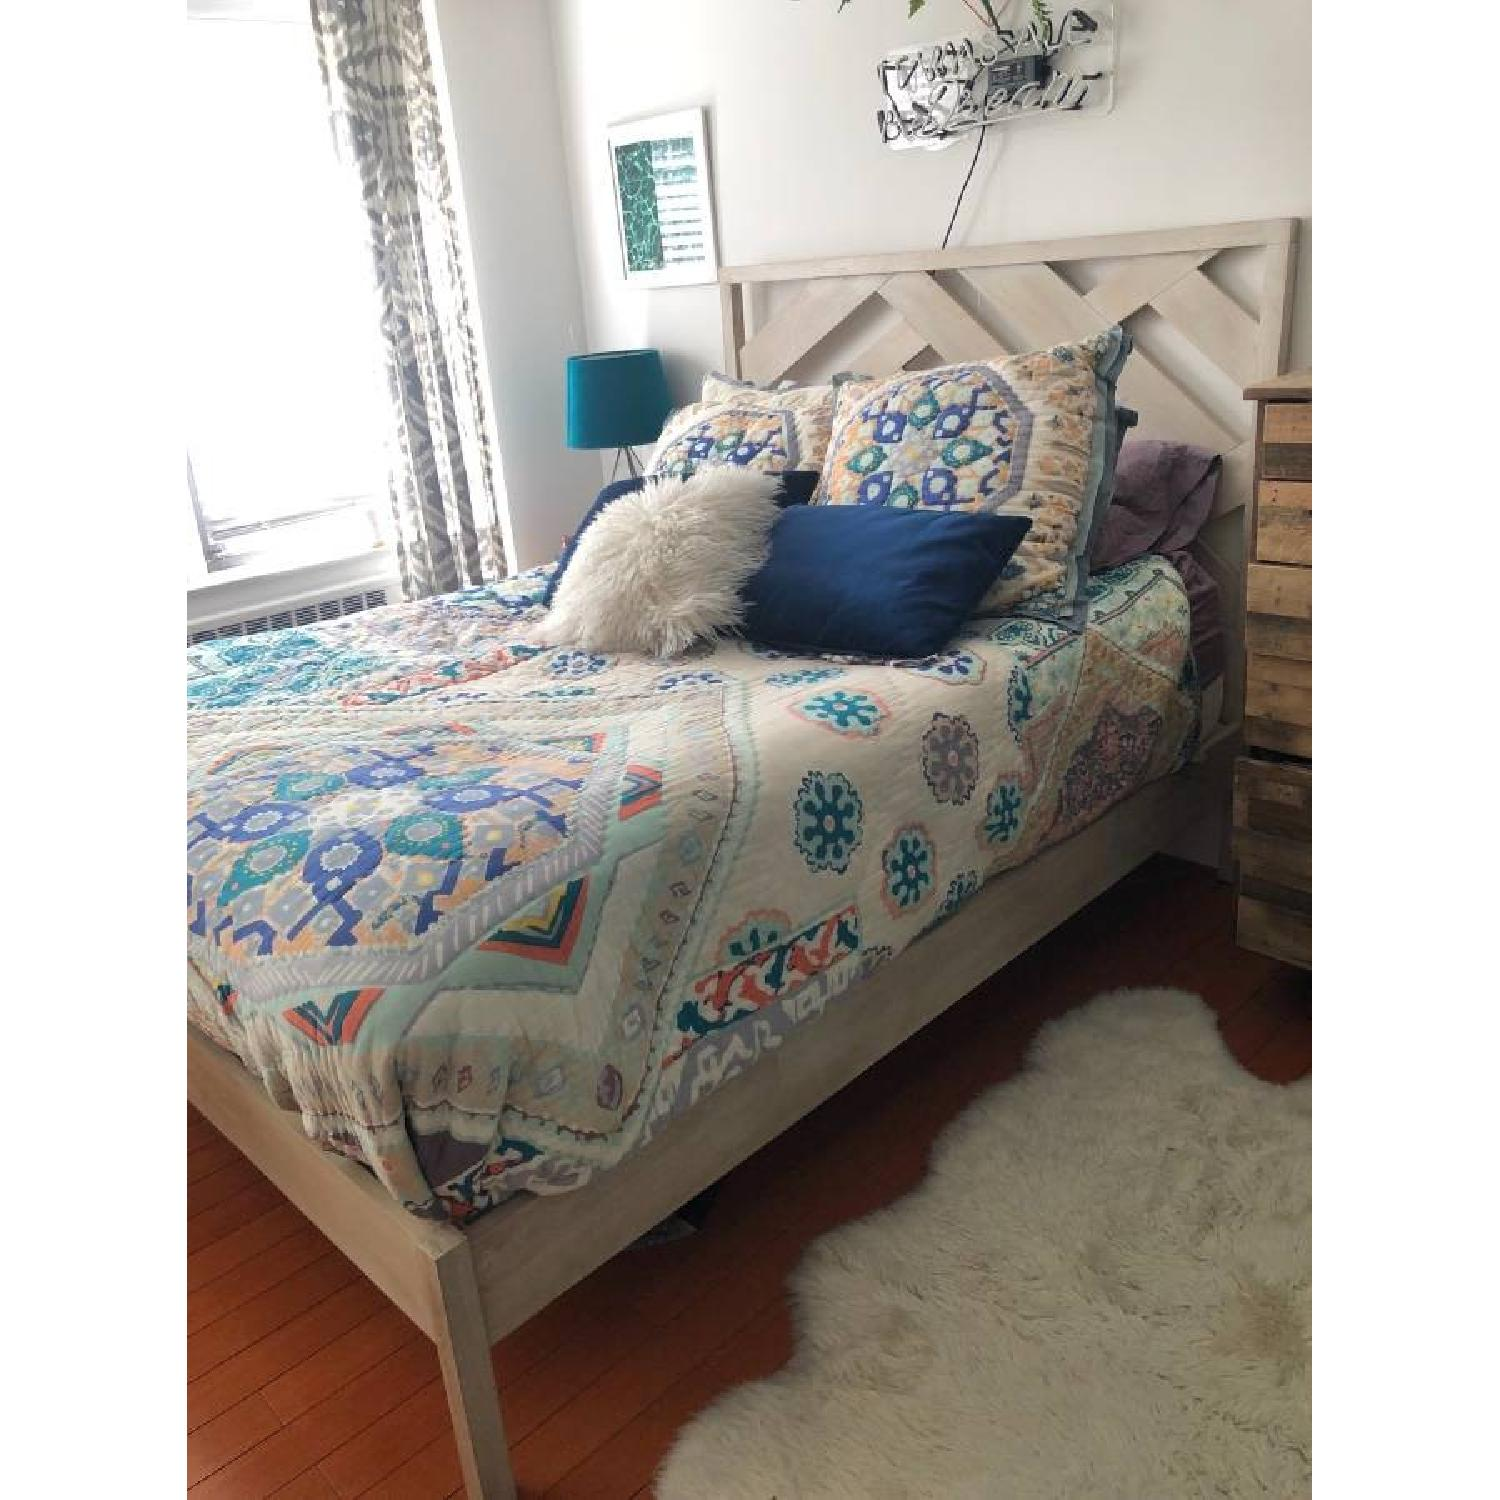 West Elm Reclaimed Wood Queen Bed Frame - image-1